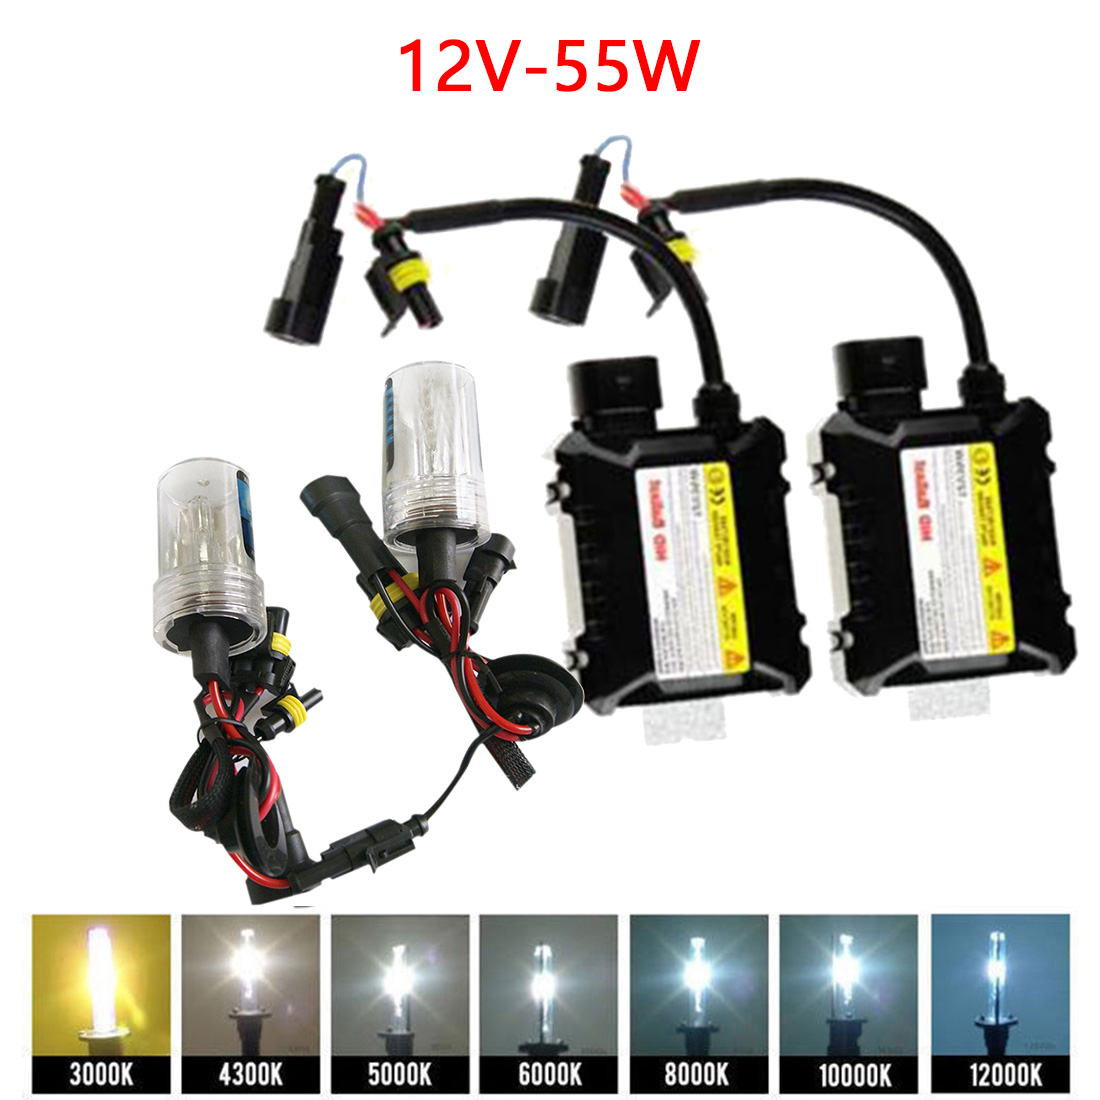 Tonewan New H7 Xenon HID Kit 55W H1 H3 H4 H8 H9 H11 9005 HB3 9006 HB4 881 H27 lamp for car headlight car styling xenon H7Tonewan New H7 Xenon HID Kit 55W H1 H3 H4 H8 H9 H11 9005 HB3 9006 HB4 881 H27 lamp for car headlight car styling xenon H7